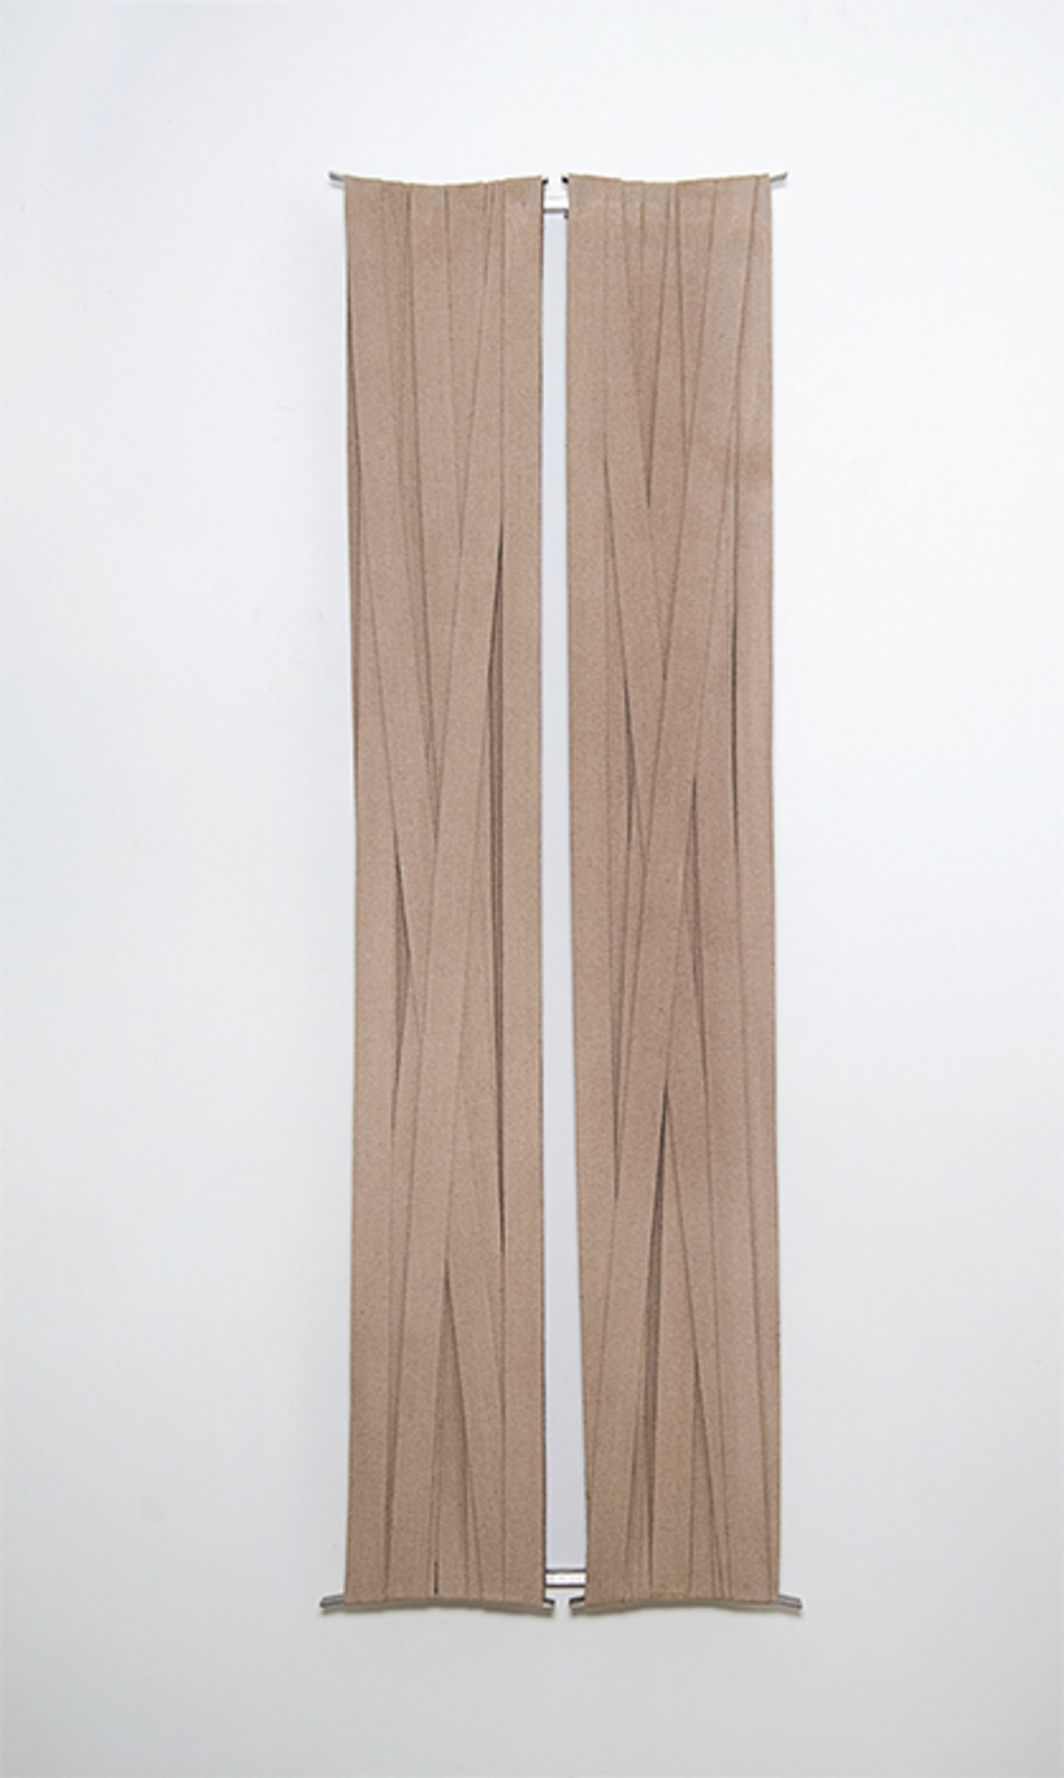 "Paolo Cotani, Tensioni, 1993, polyester bands, steel, 72 1/2 × 23 3/4 × 3 1/2""."